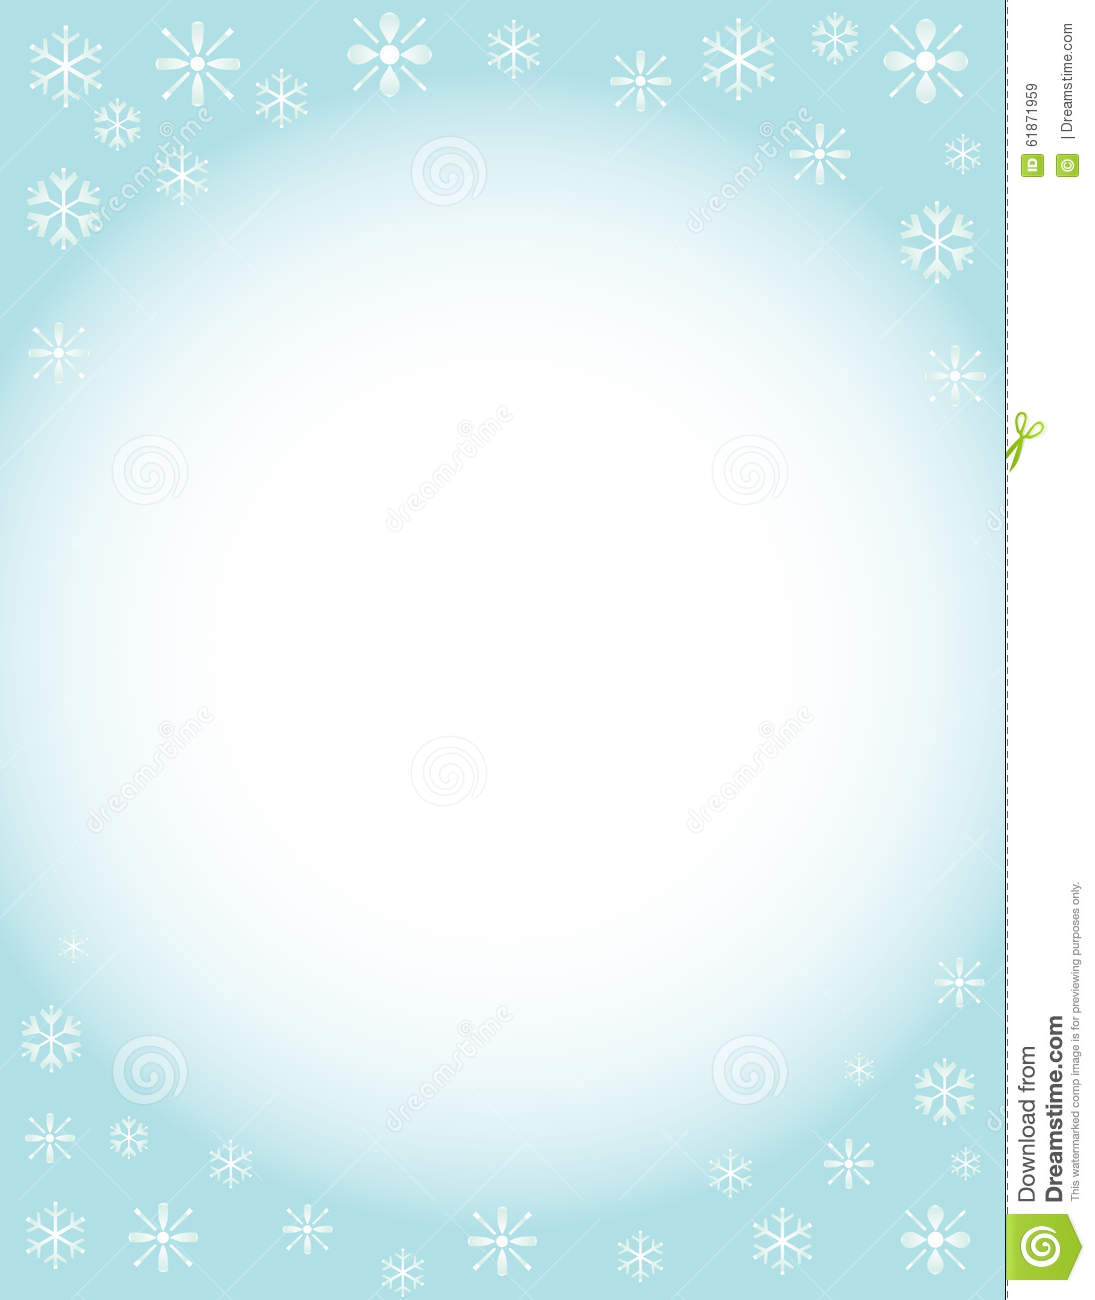 winter brochure background stock illustration image 61871959 winter brochure background